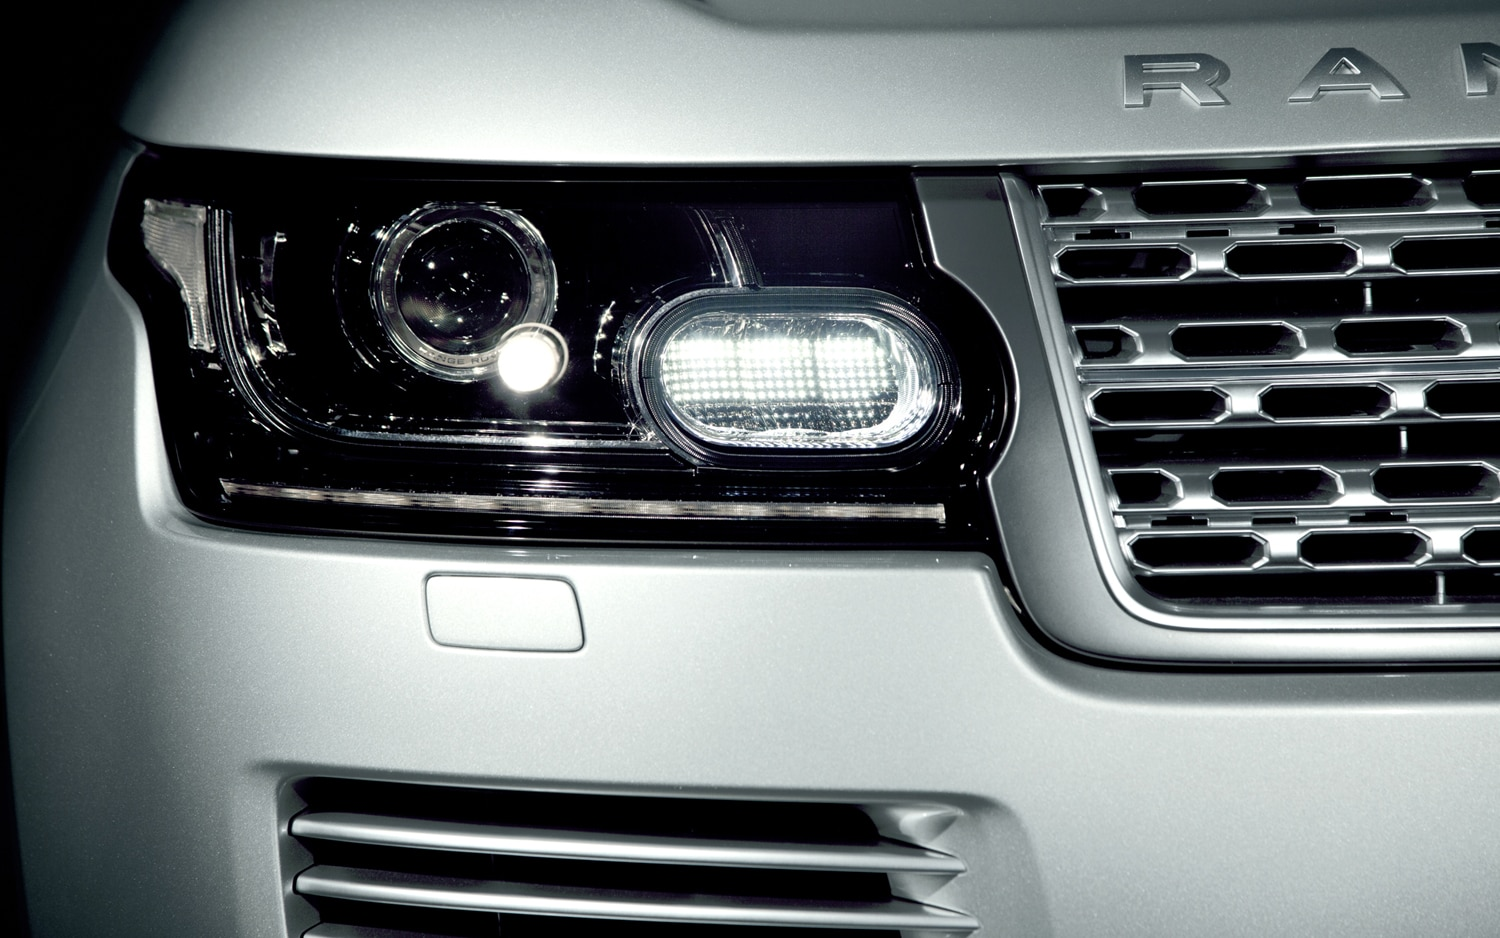 2013 Land Rover Range Rover Headlight